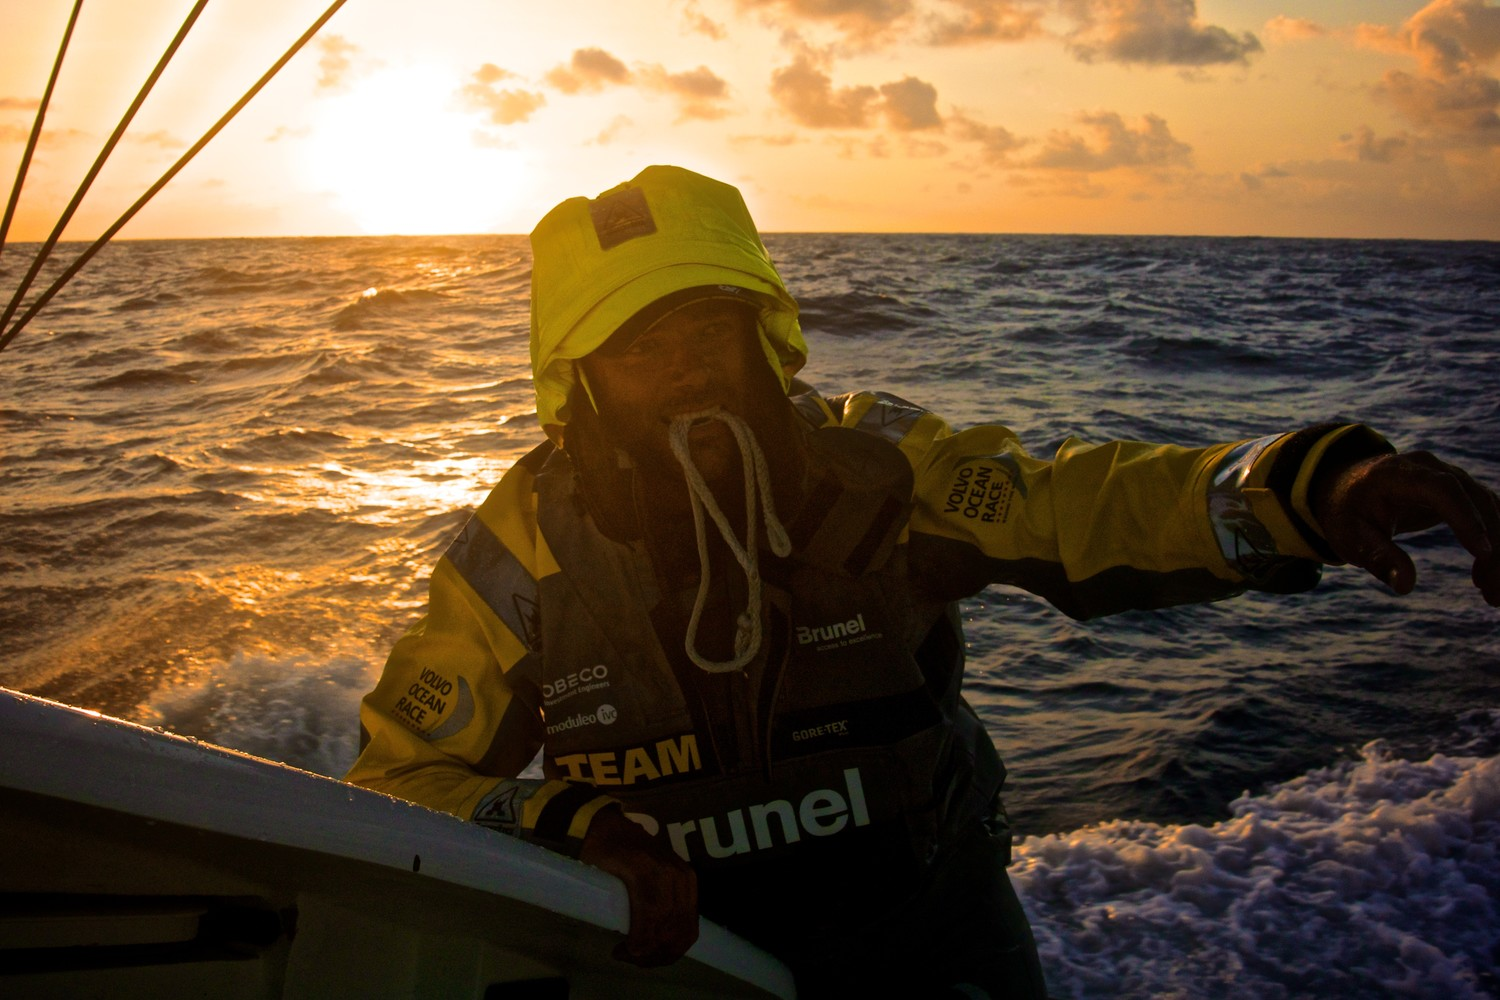 Pablo Arrarte Team Brunel VOR